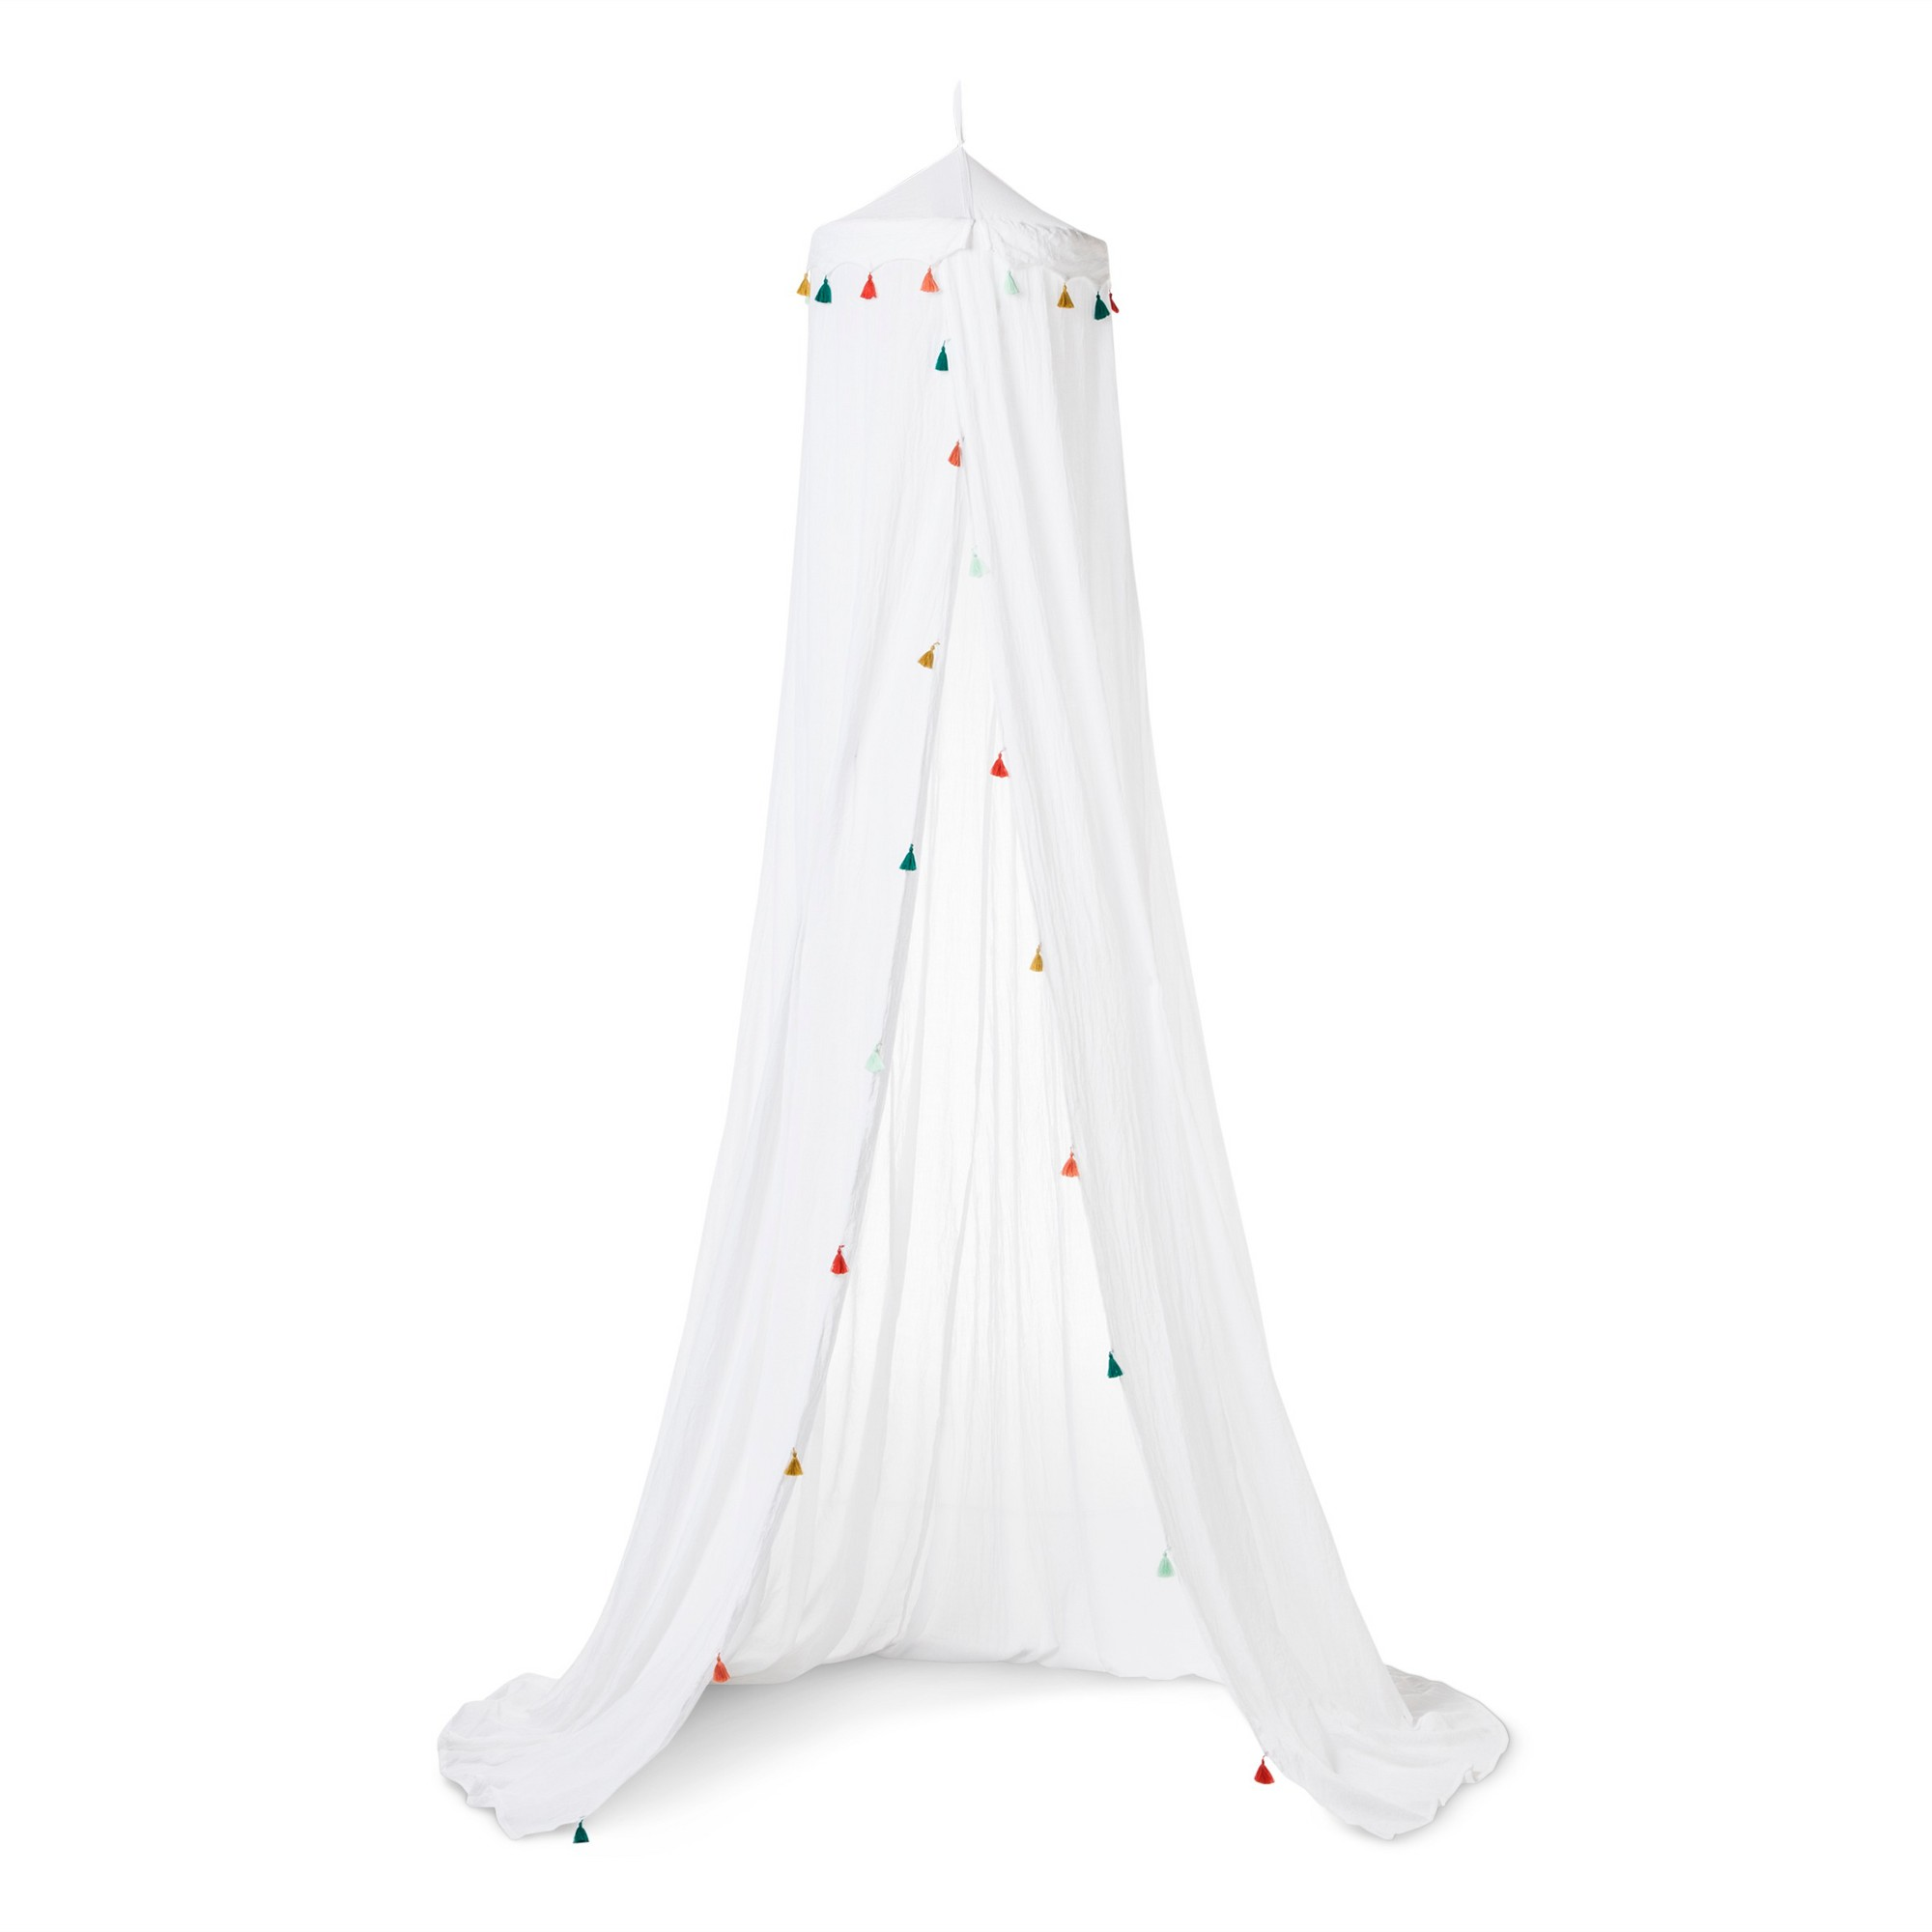 Tassel Bed Canopy One Size White Pillowfort Twin